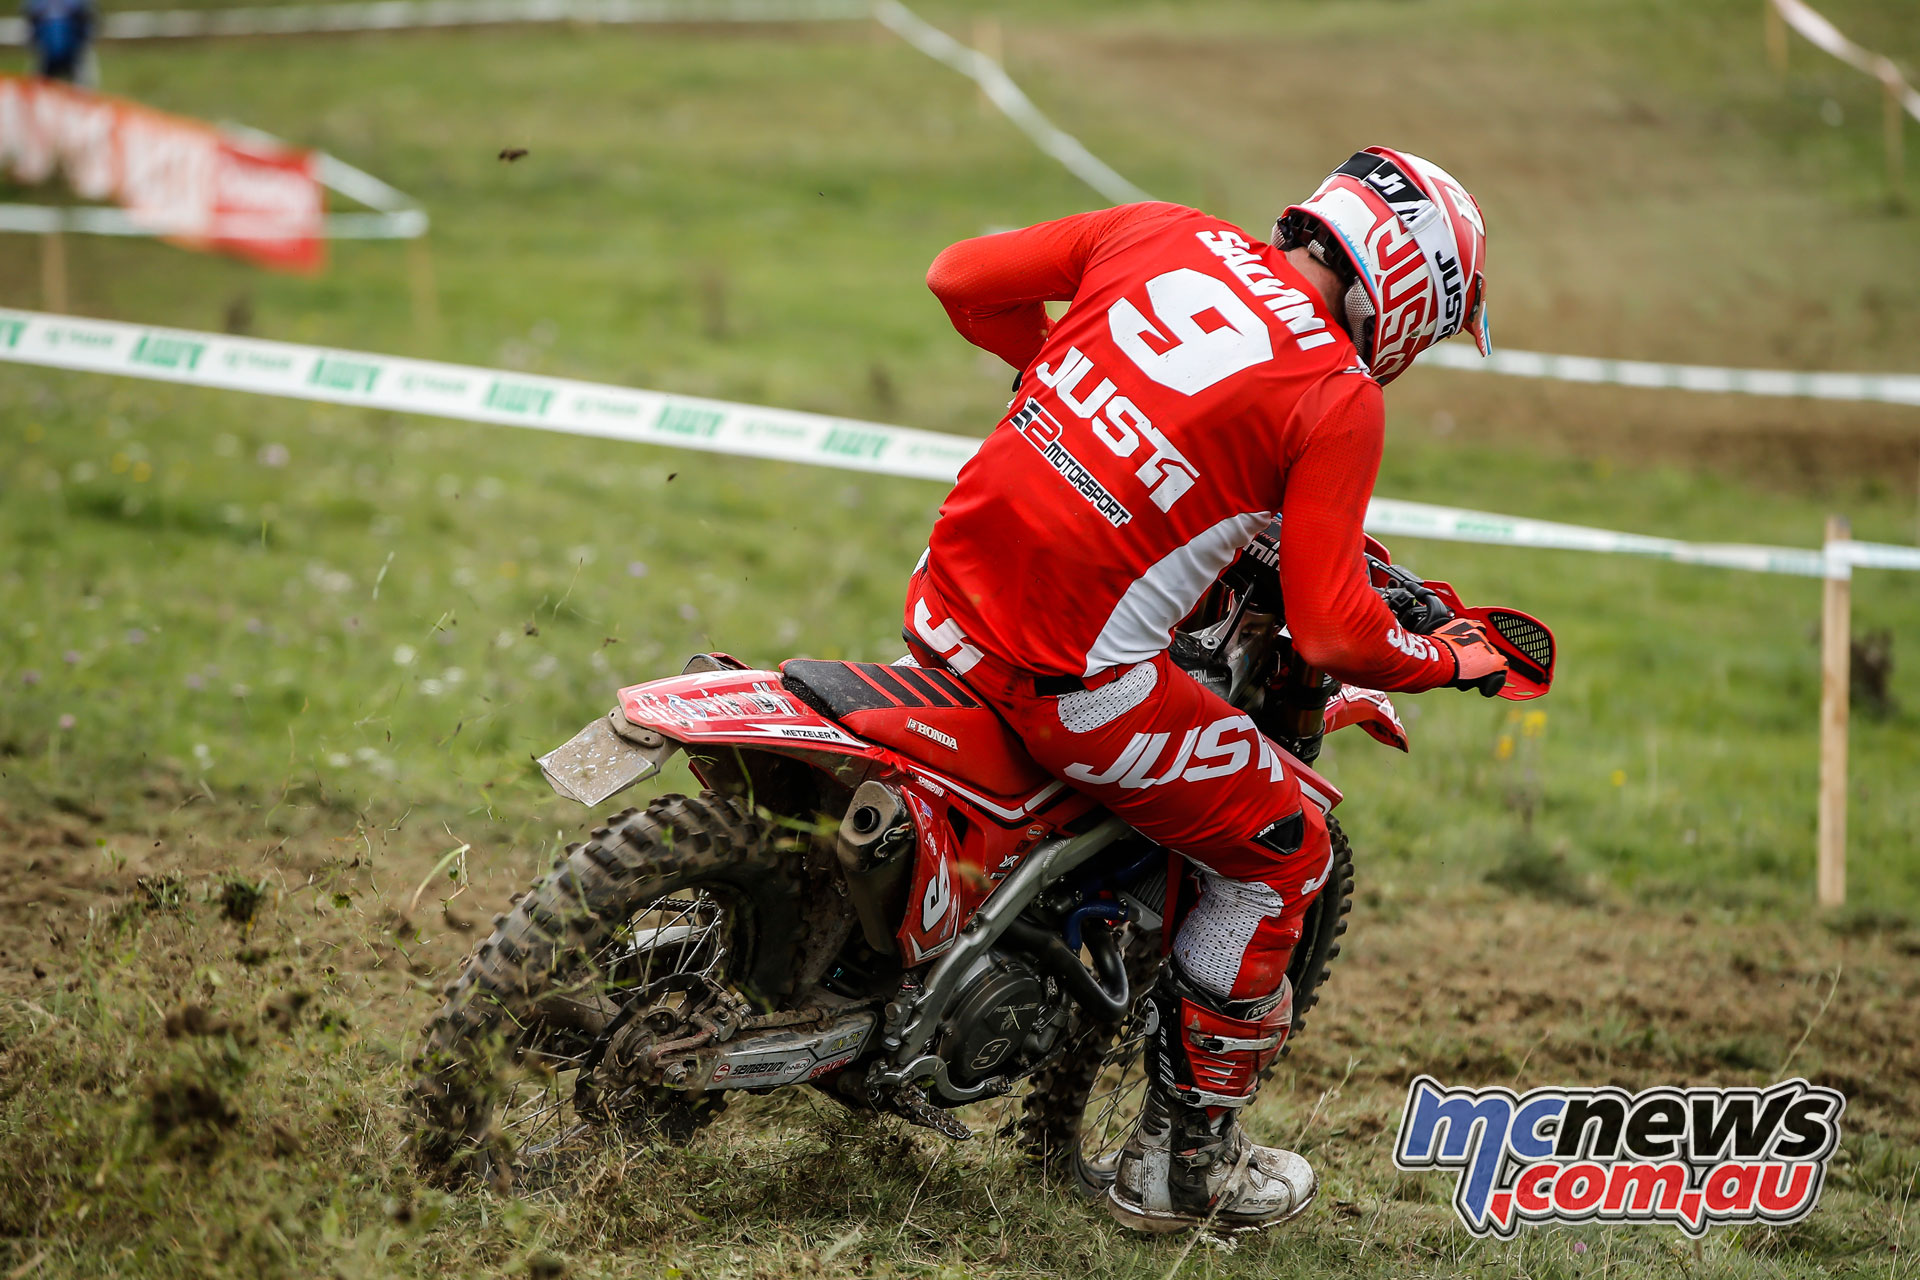 EnduroGP France Alex Salvini